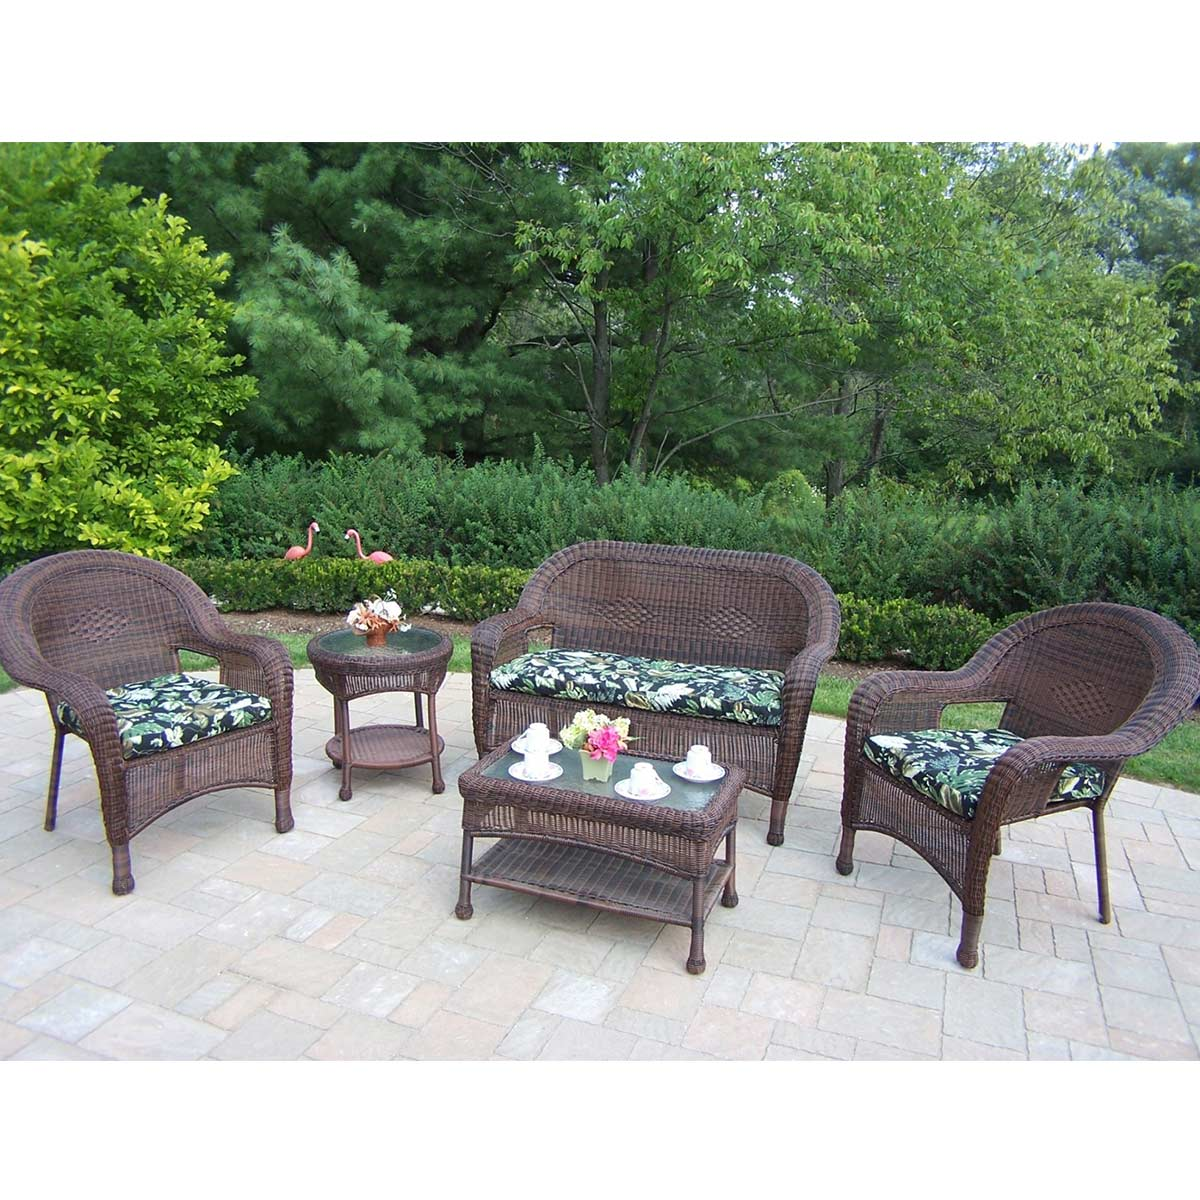 oakland living resin wicker 5 outdoor seating set